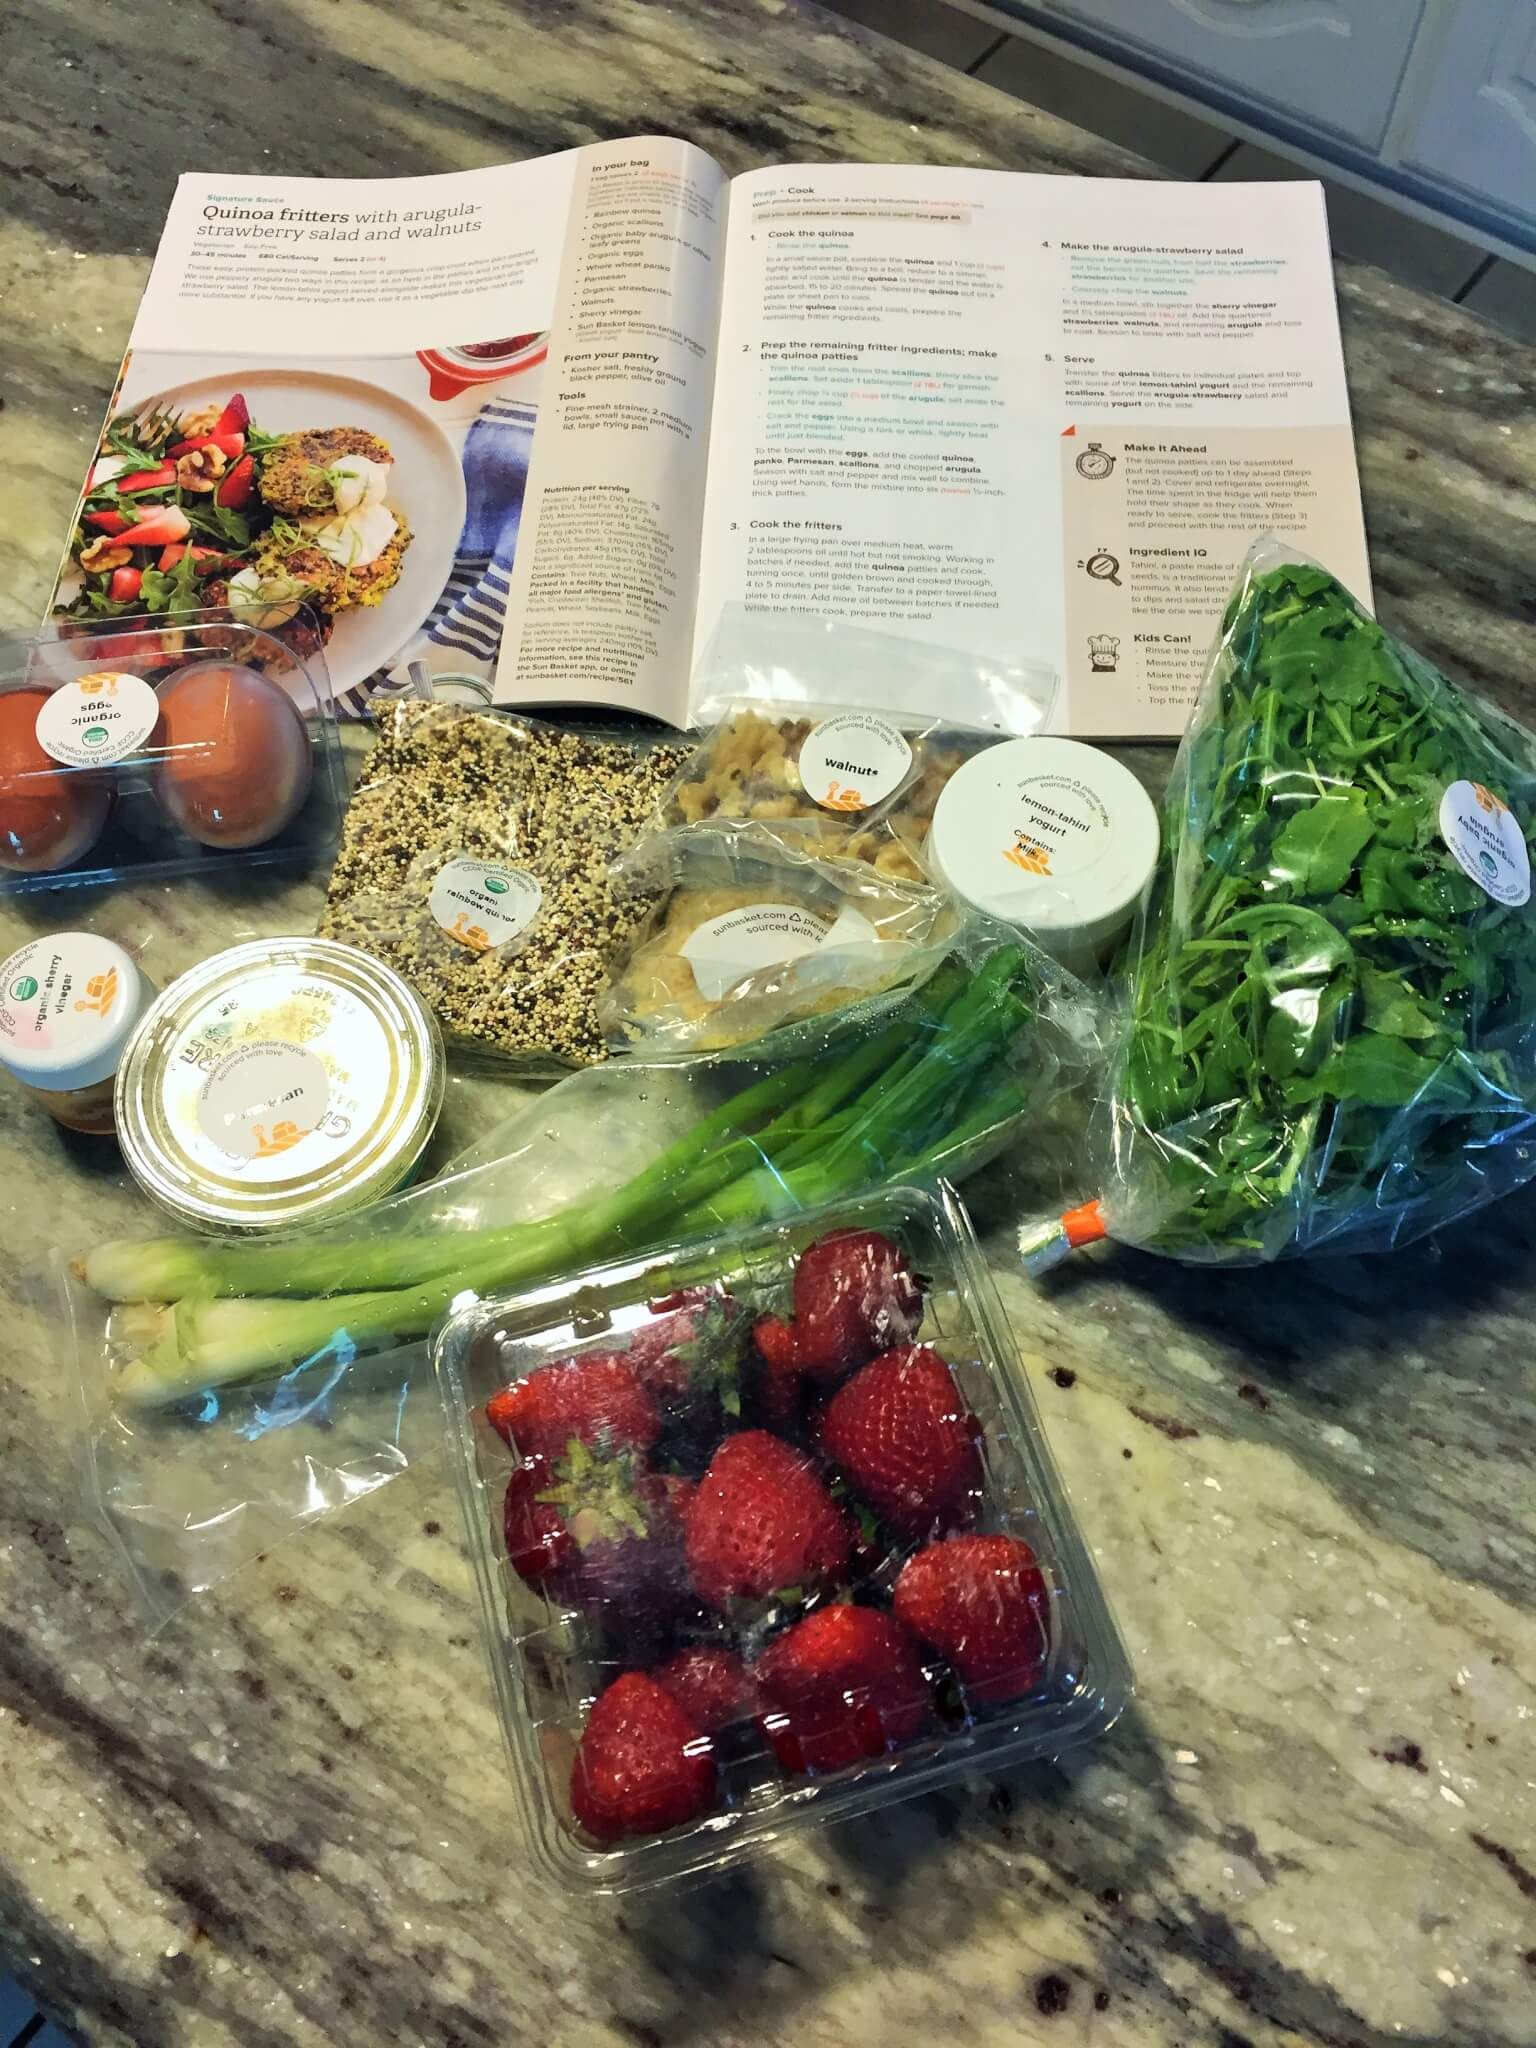 Sun Basket Meal Kit Contents